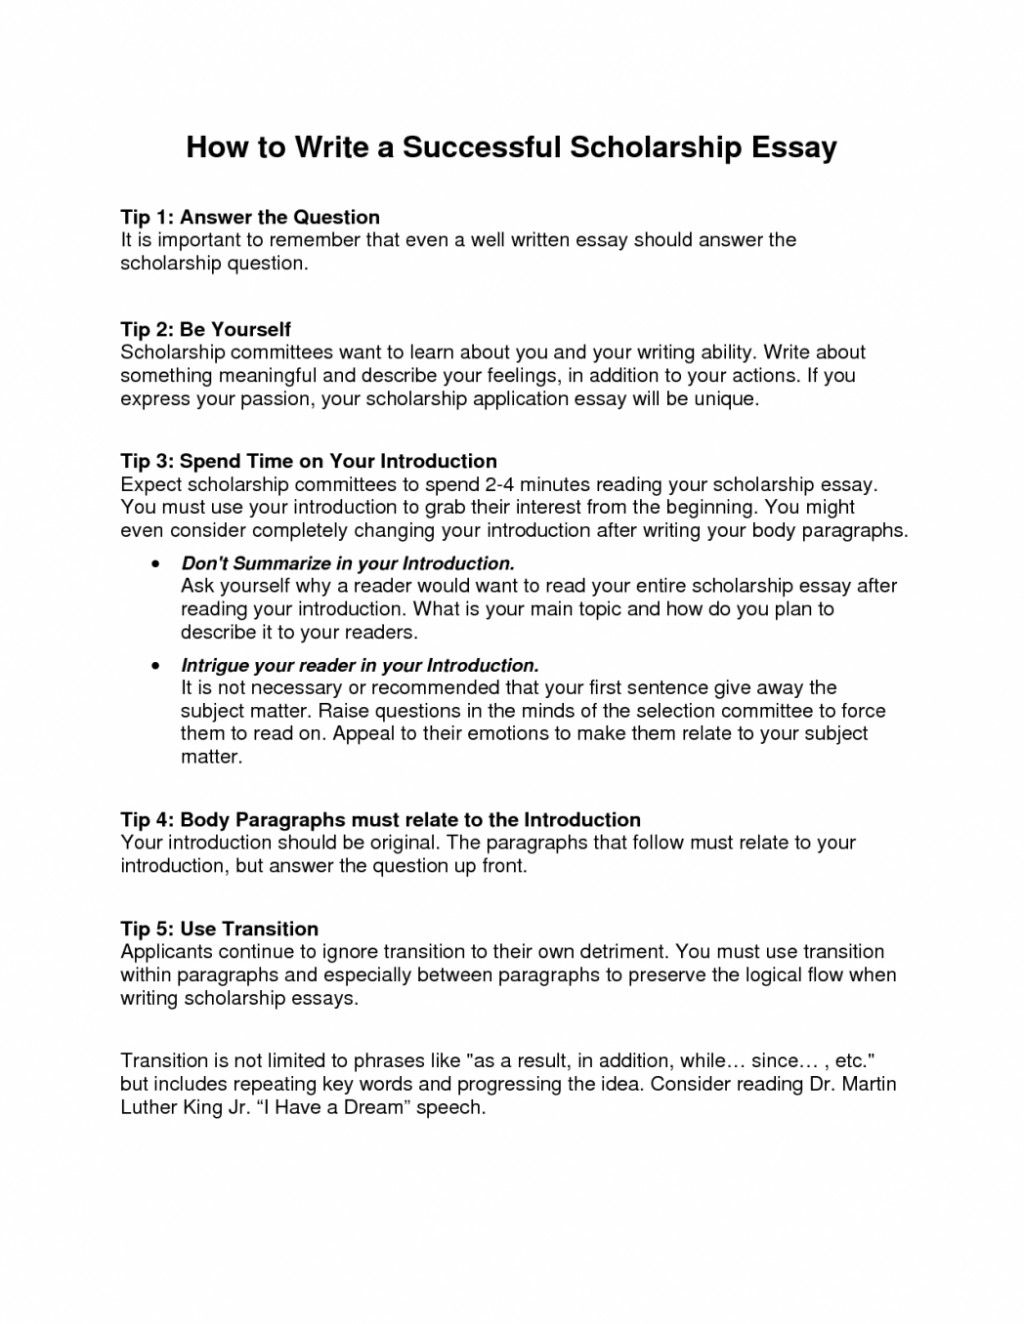 014 Perfect Essay Essays Writing About Yourself Make Online The Wftbt Introduction How To Write For Sat University Conclusion Outline Scholarship Pdf College Application Dreaded Checker Template Large